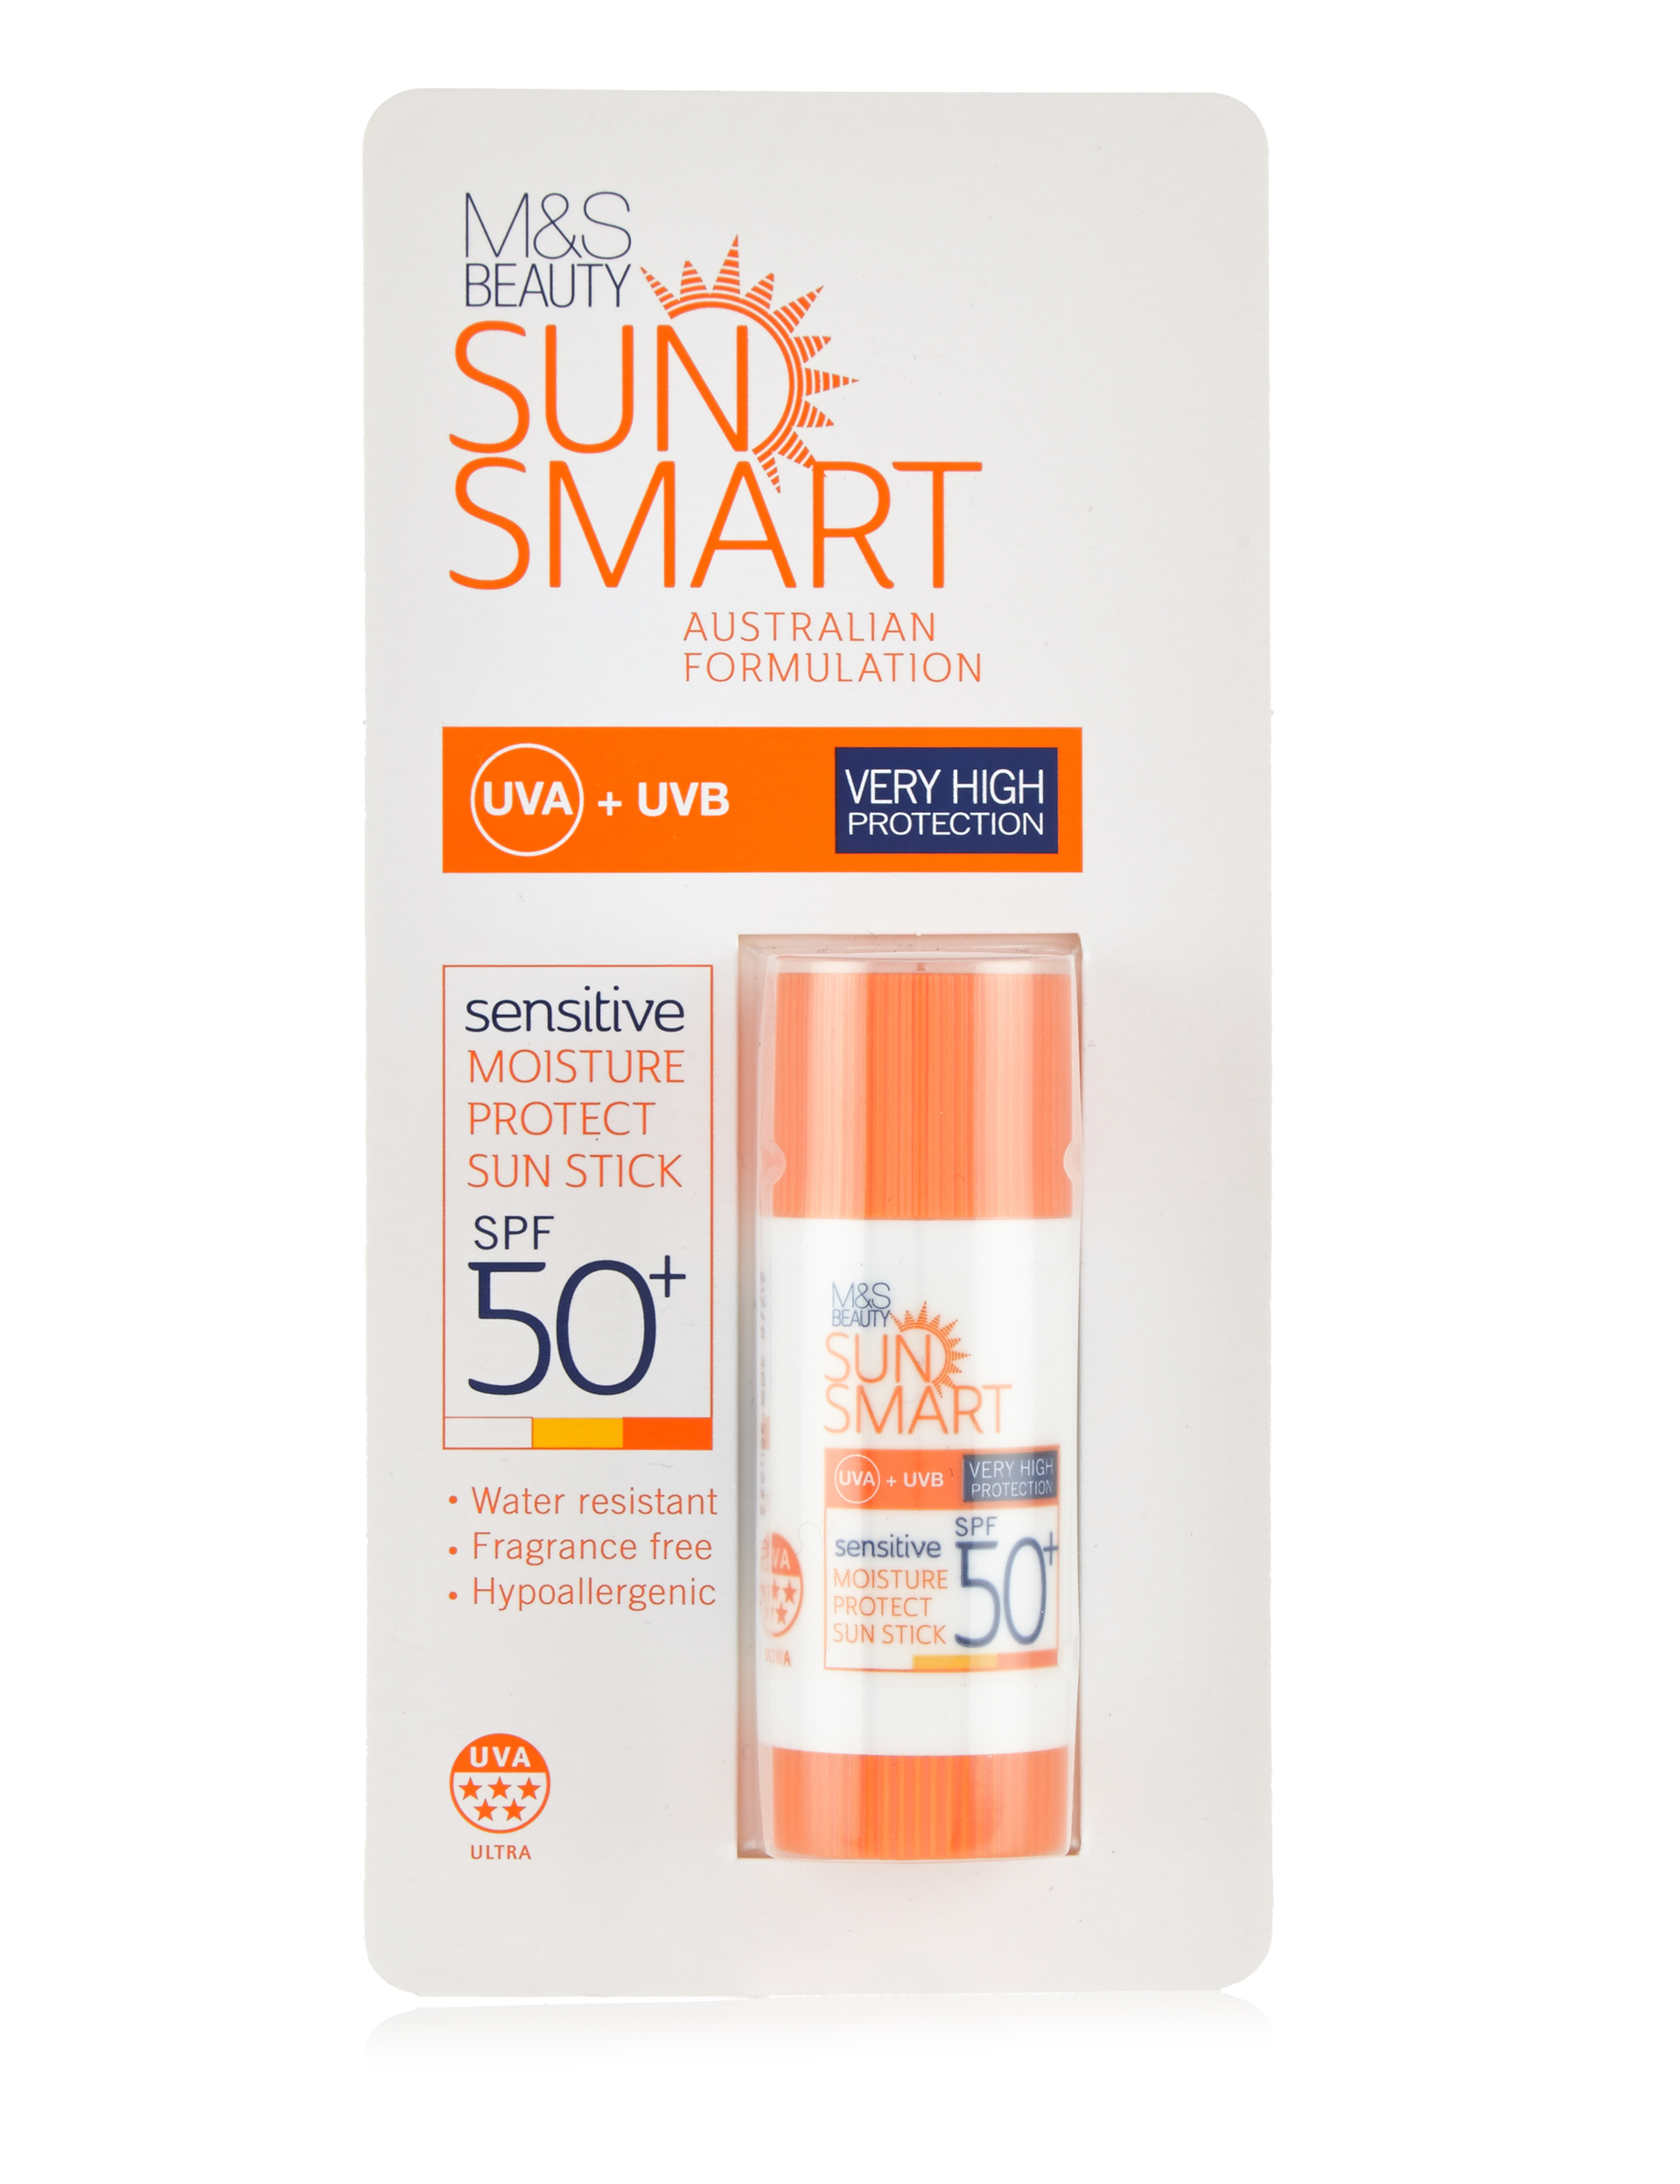 MARKS & SPENCER Sun Smart Sensitive Moisture Protect Sun Stick SPF 50+